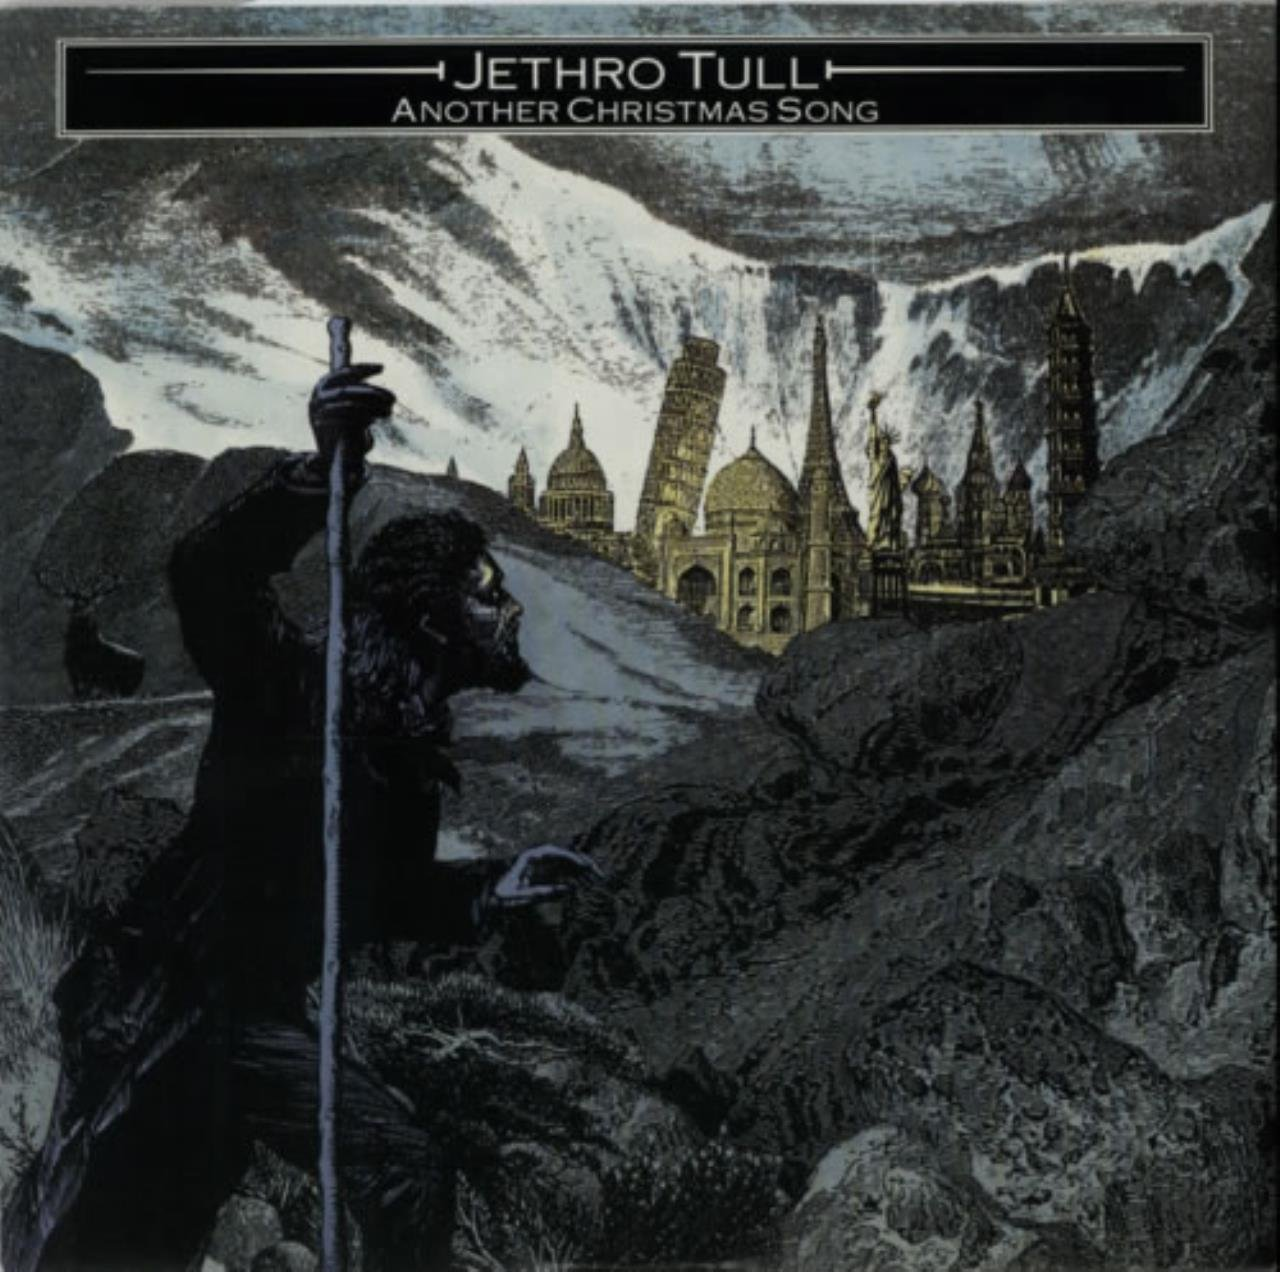 Jethro Tull - Another Christmas Song - Amazon.com Music